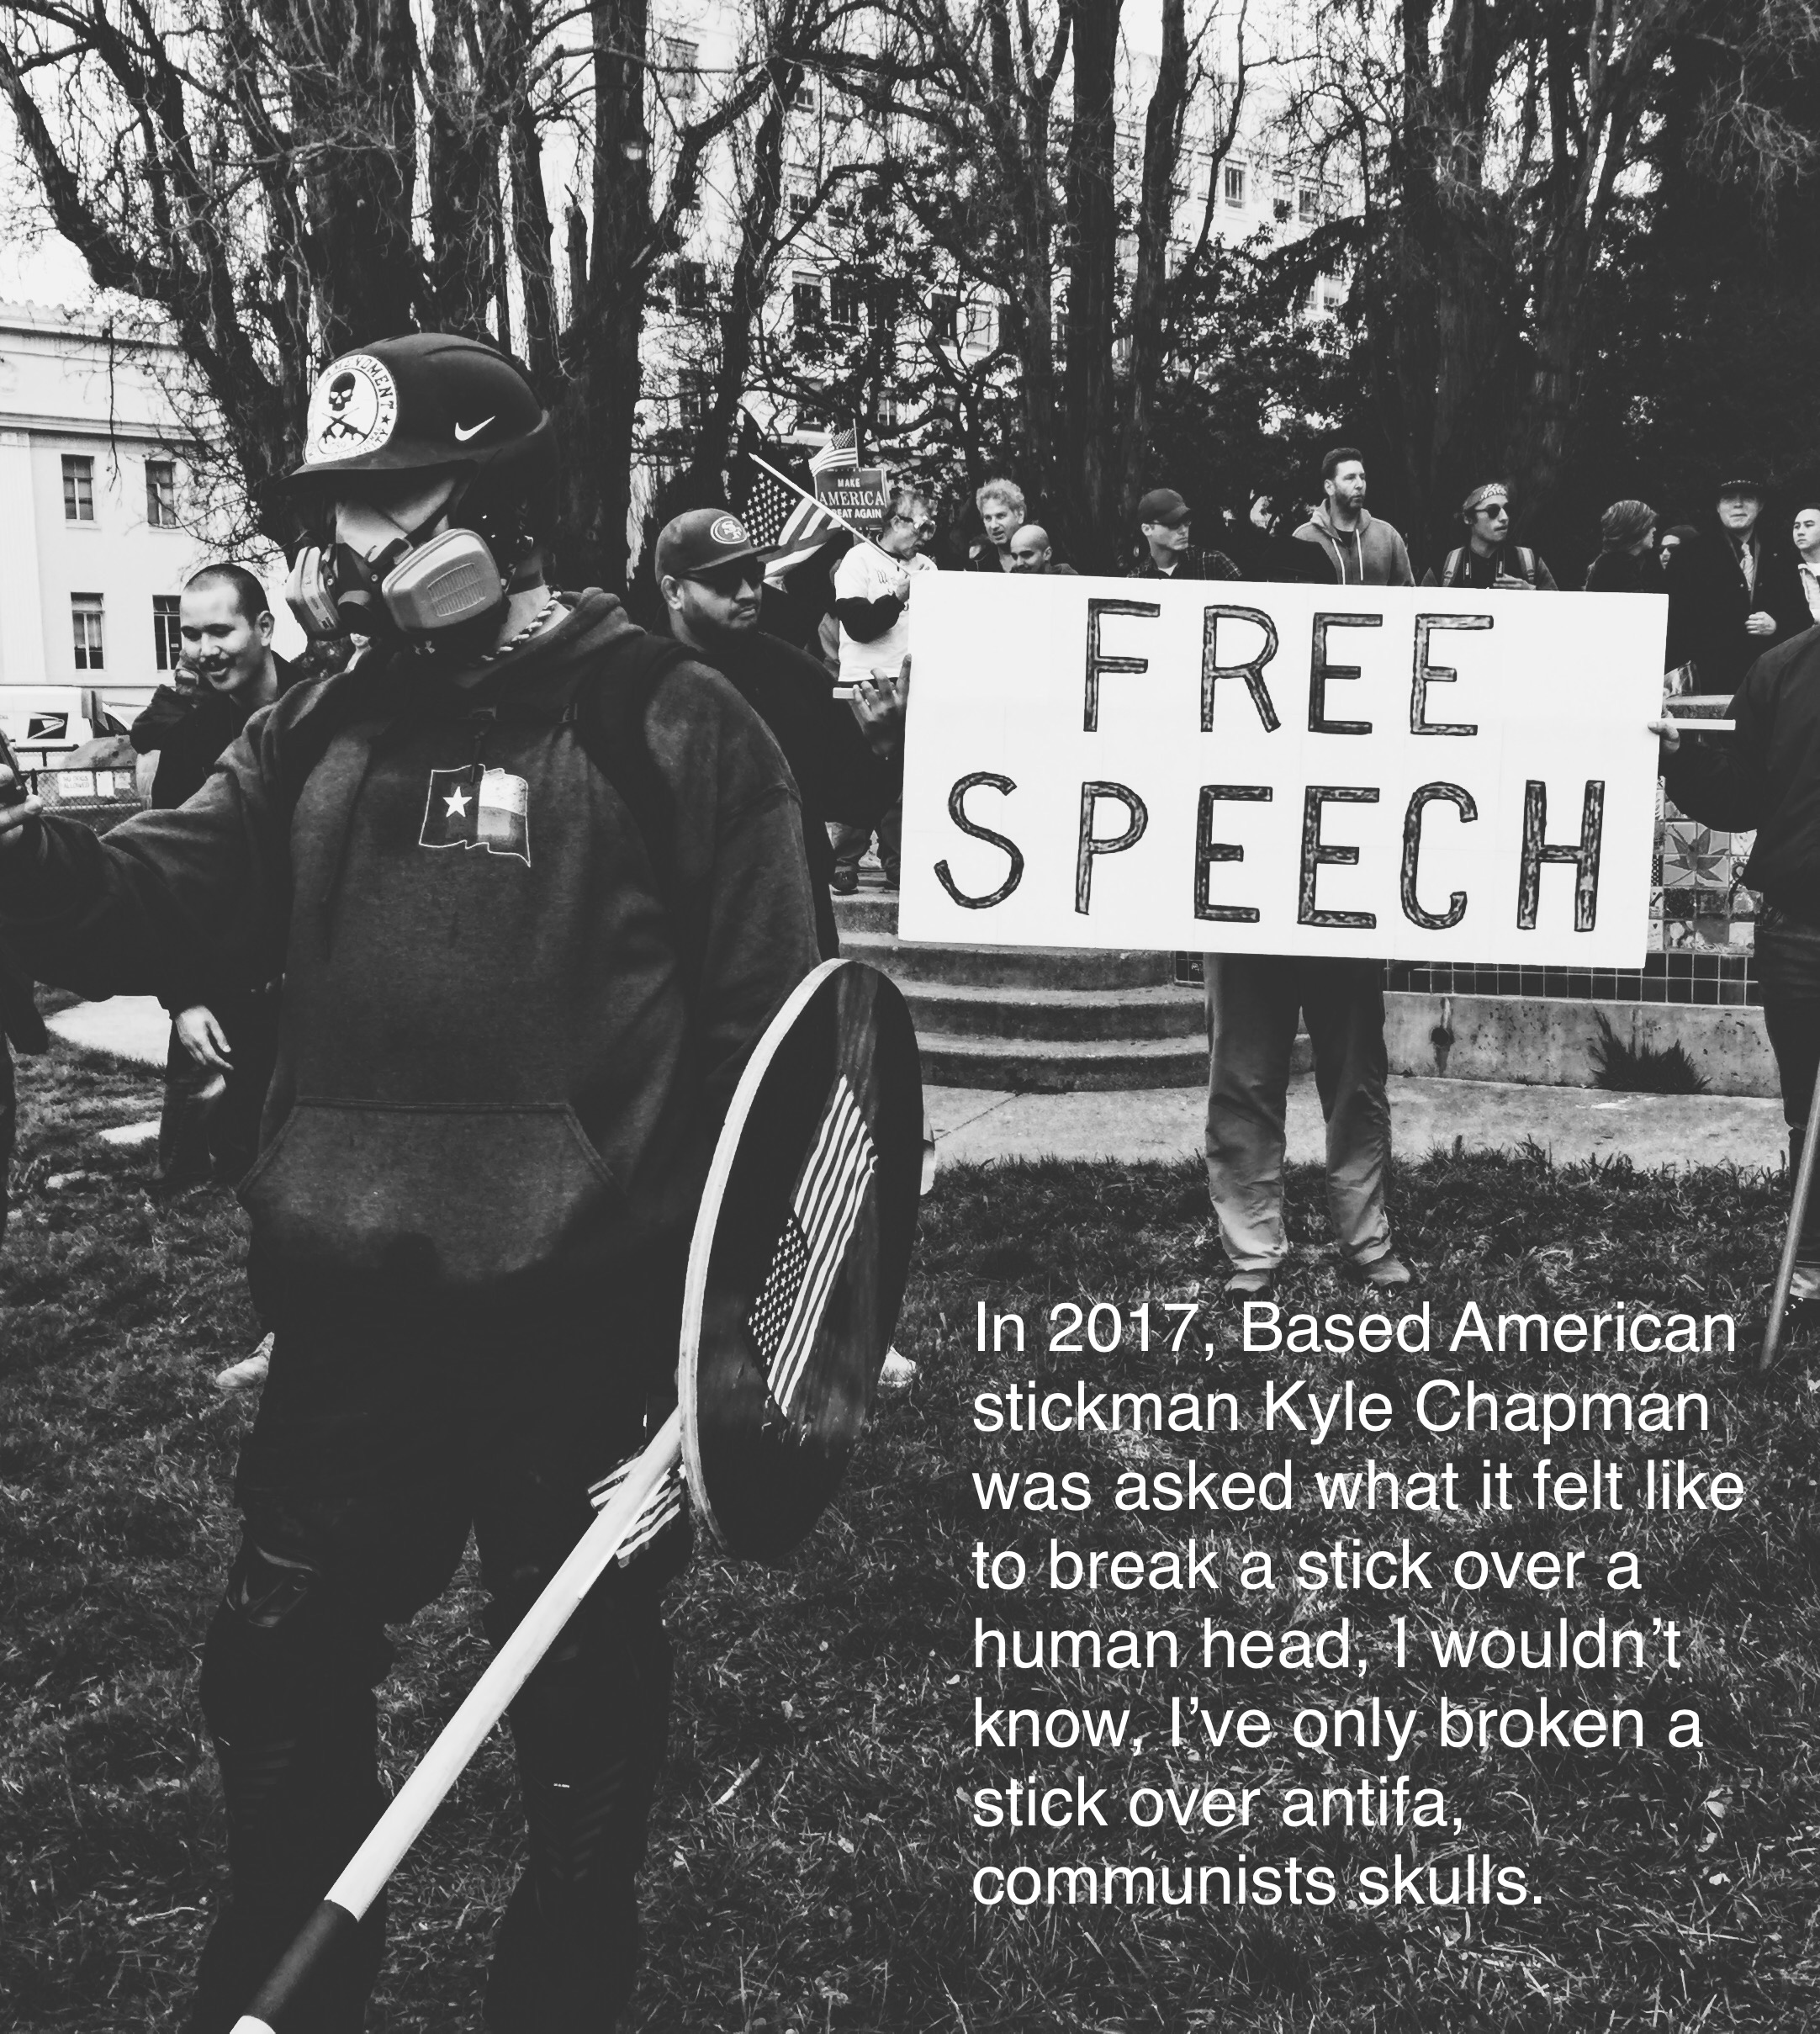 In 2017, Based American Stickman Kyle Chapman was asked what it felt like to break a stick over a human head, I wouldn't know, I've only broken a stick overAntifa,communists' skulls.